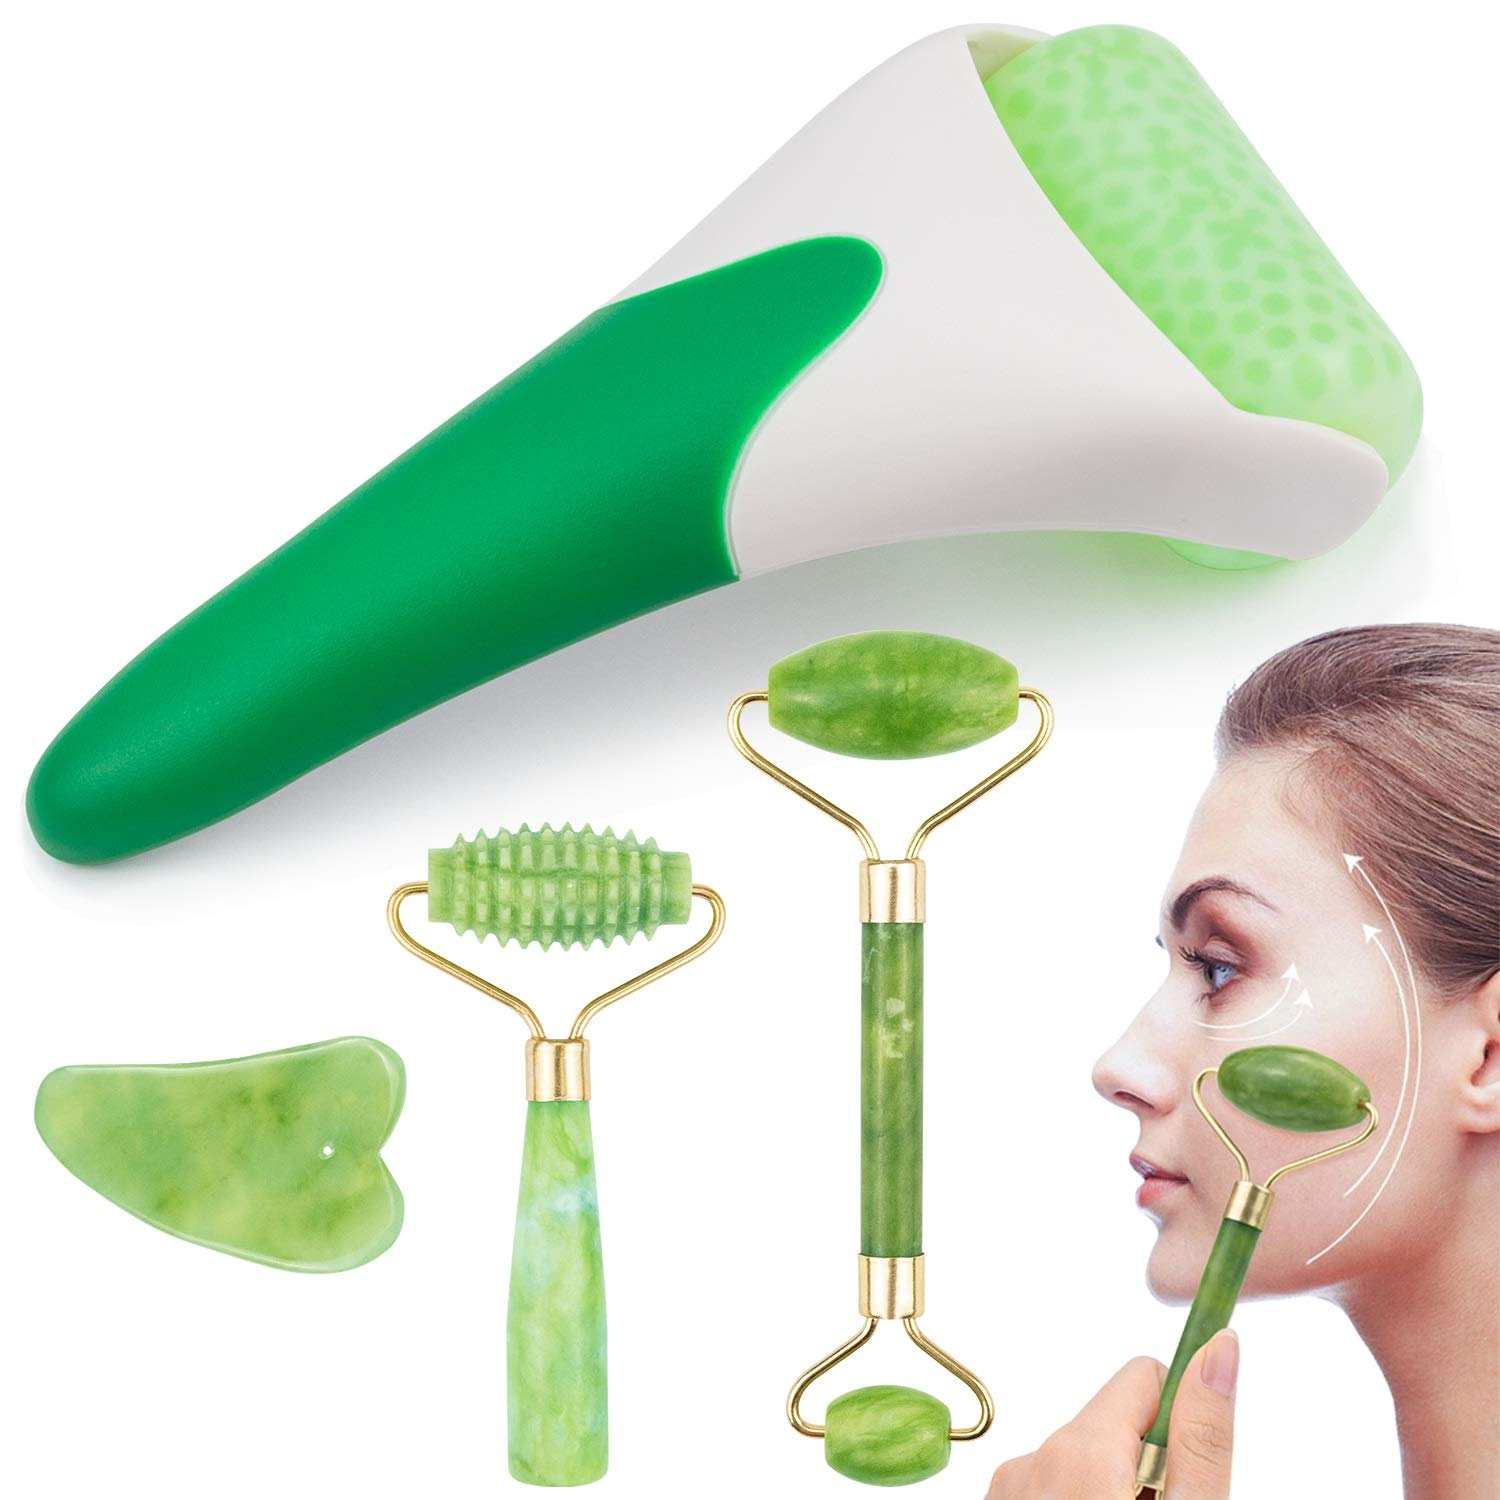 EAONE 4 in 1 Ice Roller Jade Roller Eyes Facial Massage Kits Skin Roller for Face Eyeball Neck Massage (1 Pc Cooling Roller, 1Pc Double Head Jade Roller, 1Pc Single Head Jade Roller, 1Pc Gua Sha Tool): Beauty